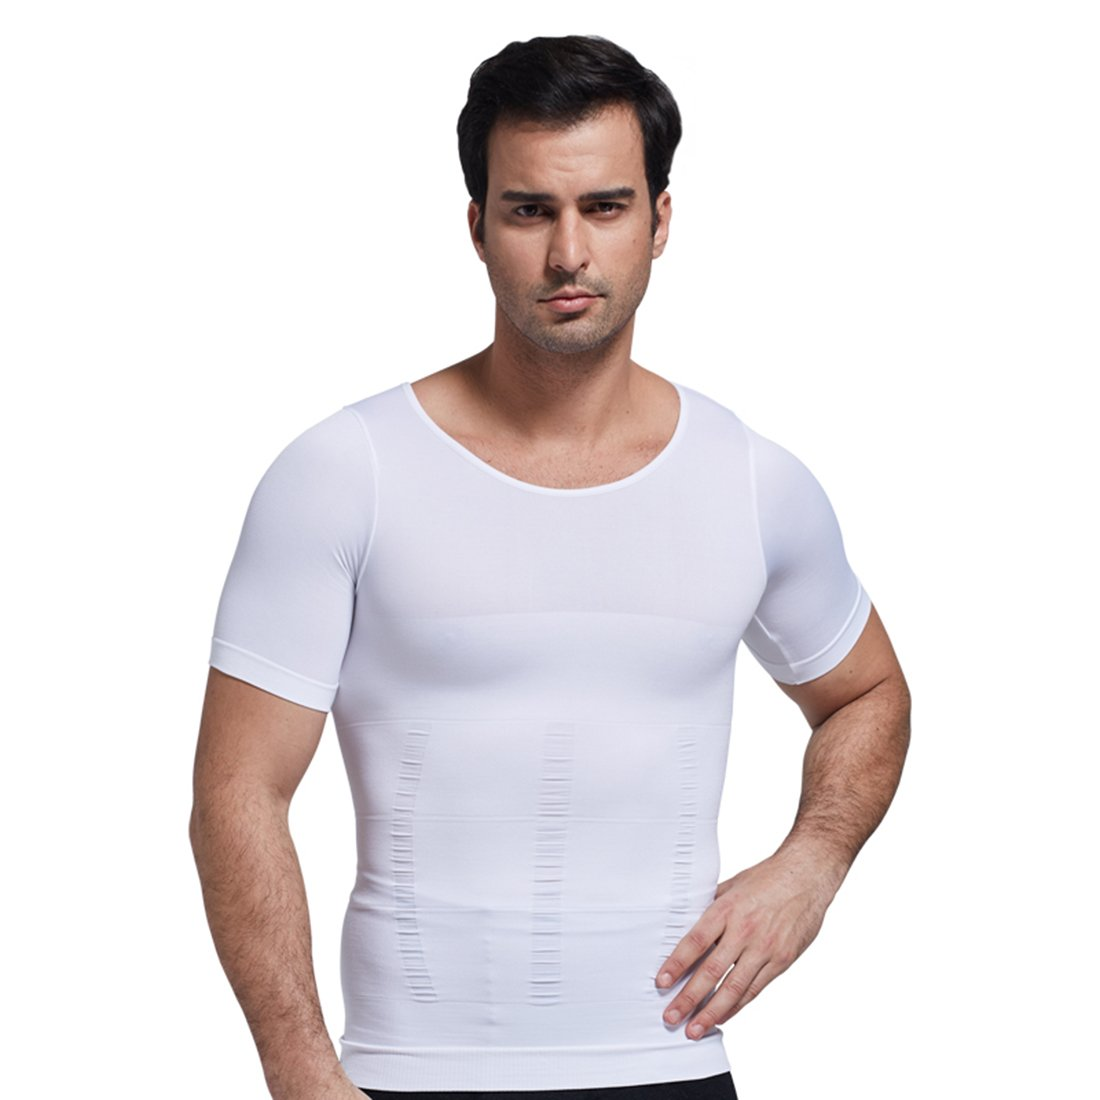 ZEROBODYS Mens Comfortable Body Shaper Compression Short Sleeve T-Shirt SS-M12